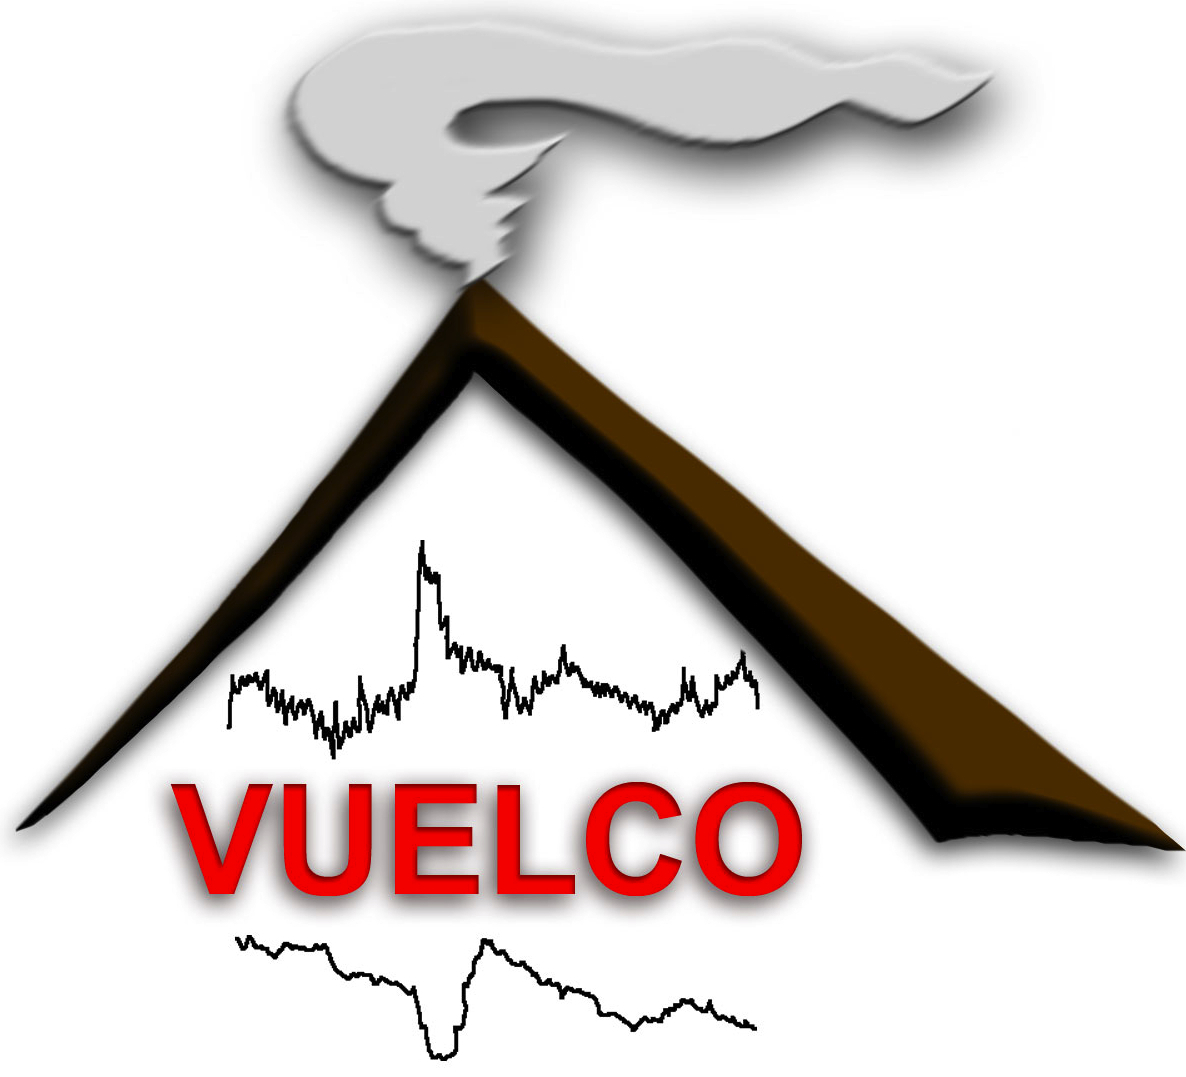 VUELCO Volcanic unrest in Europe and Latin America: Phenomenology, eruption precursors, hazard forecast, and risk mitigation group image